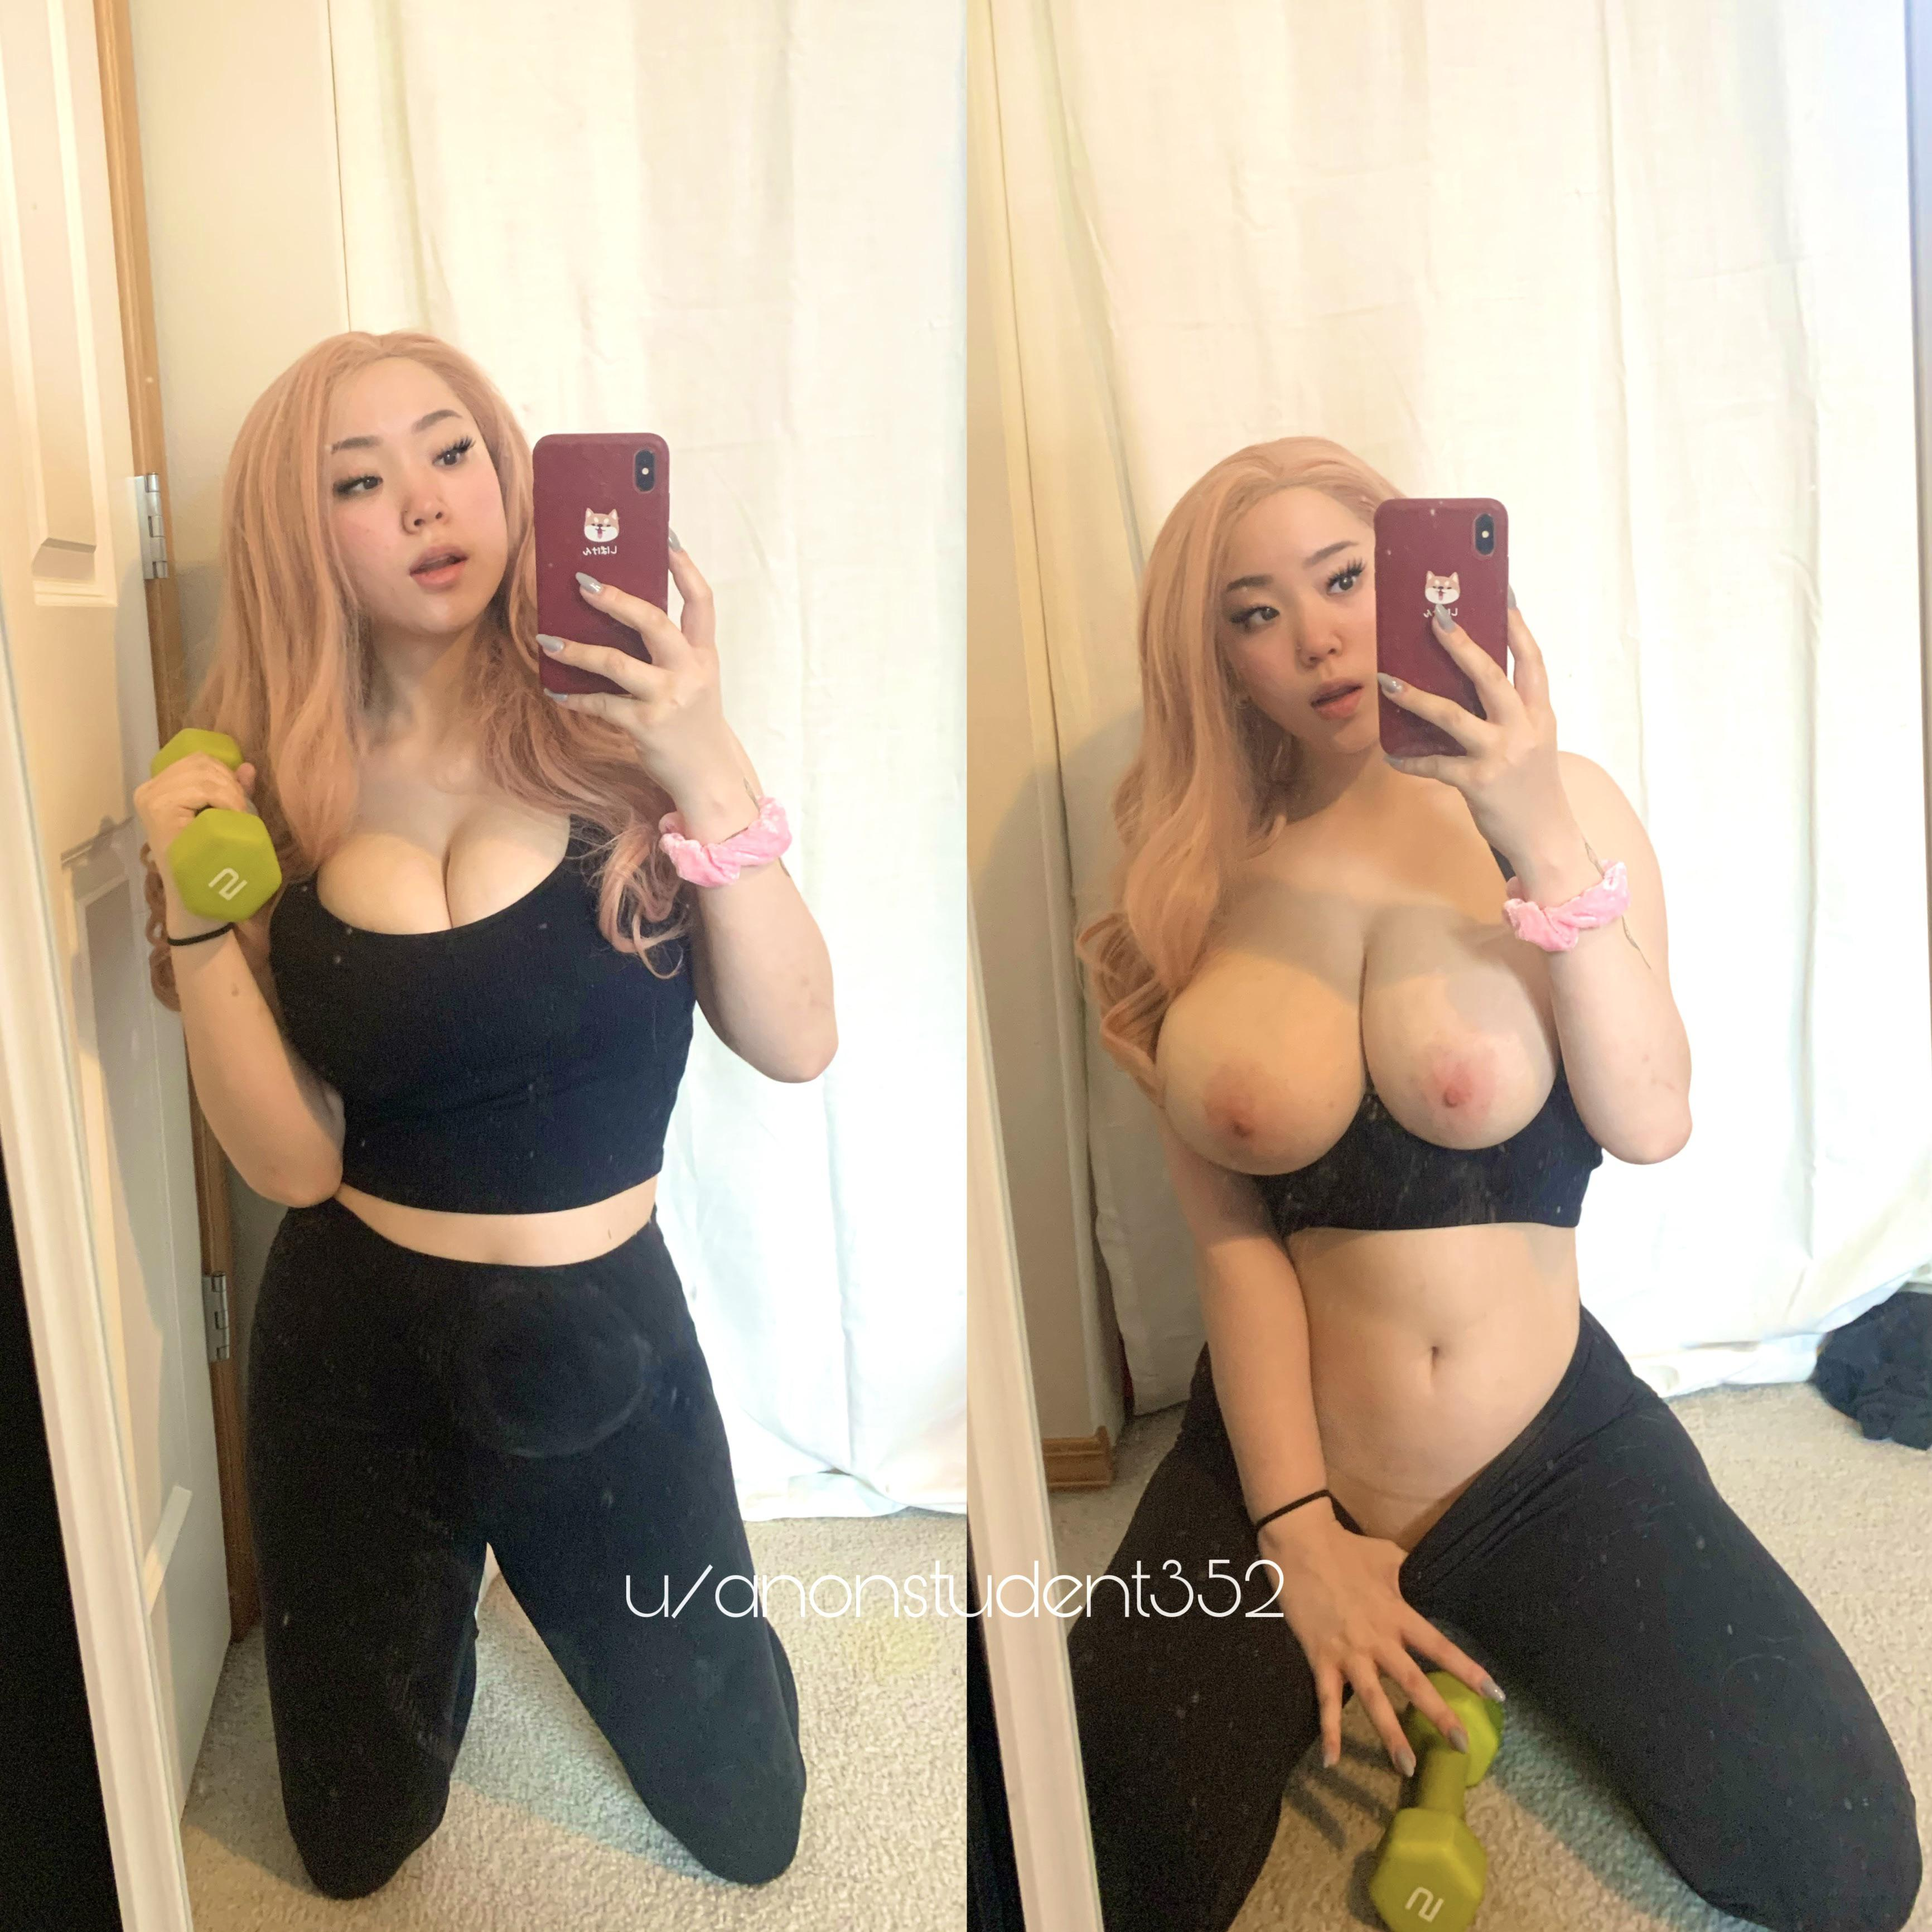 One of our naked asian pics called What would you do to me if you saw me at the gym?